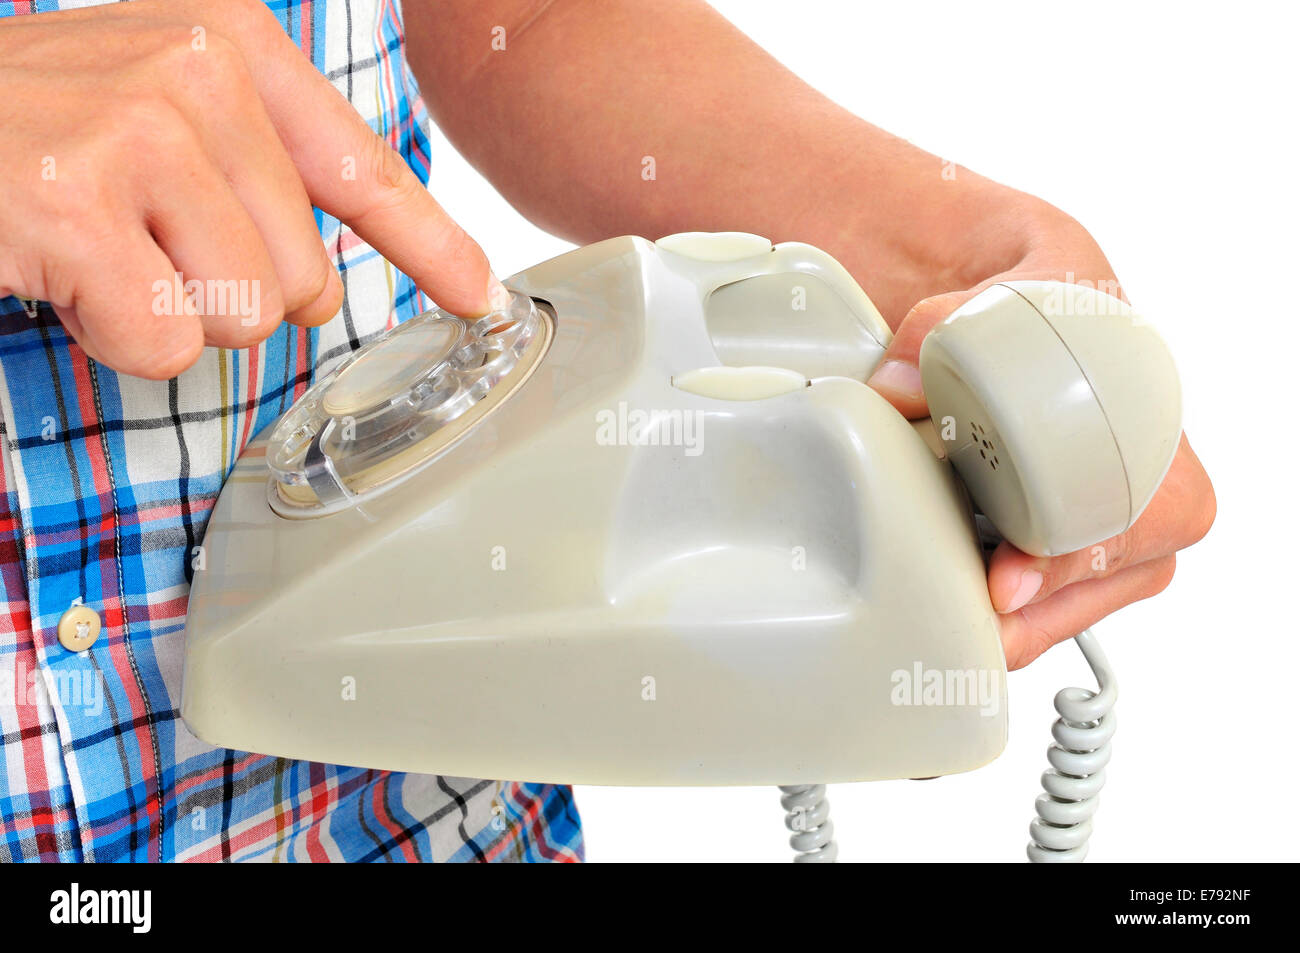 detail of a young man dialing in a rotary dial telephone - Stock Image